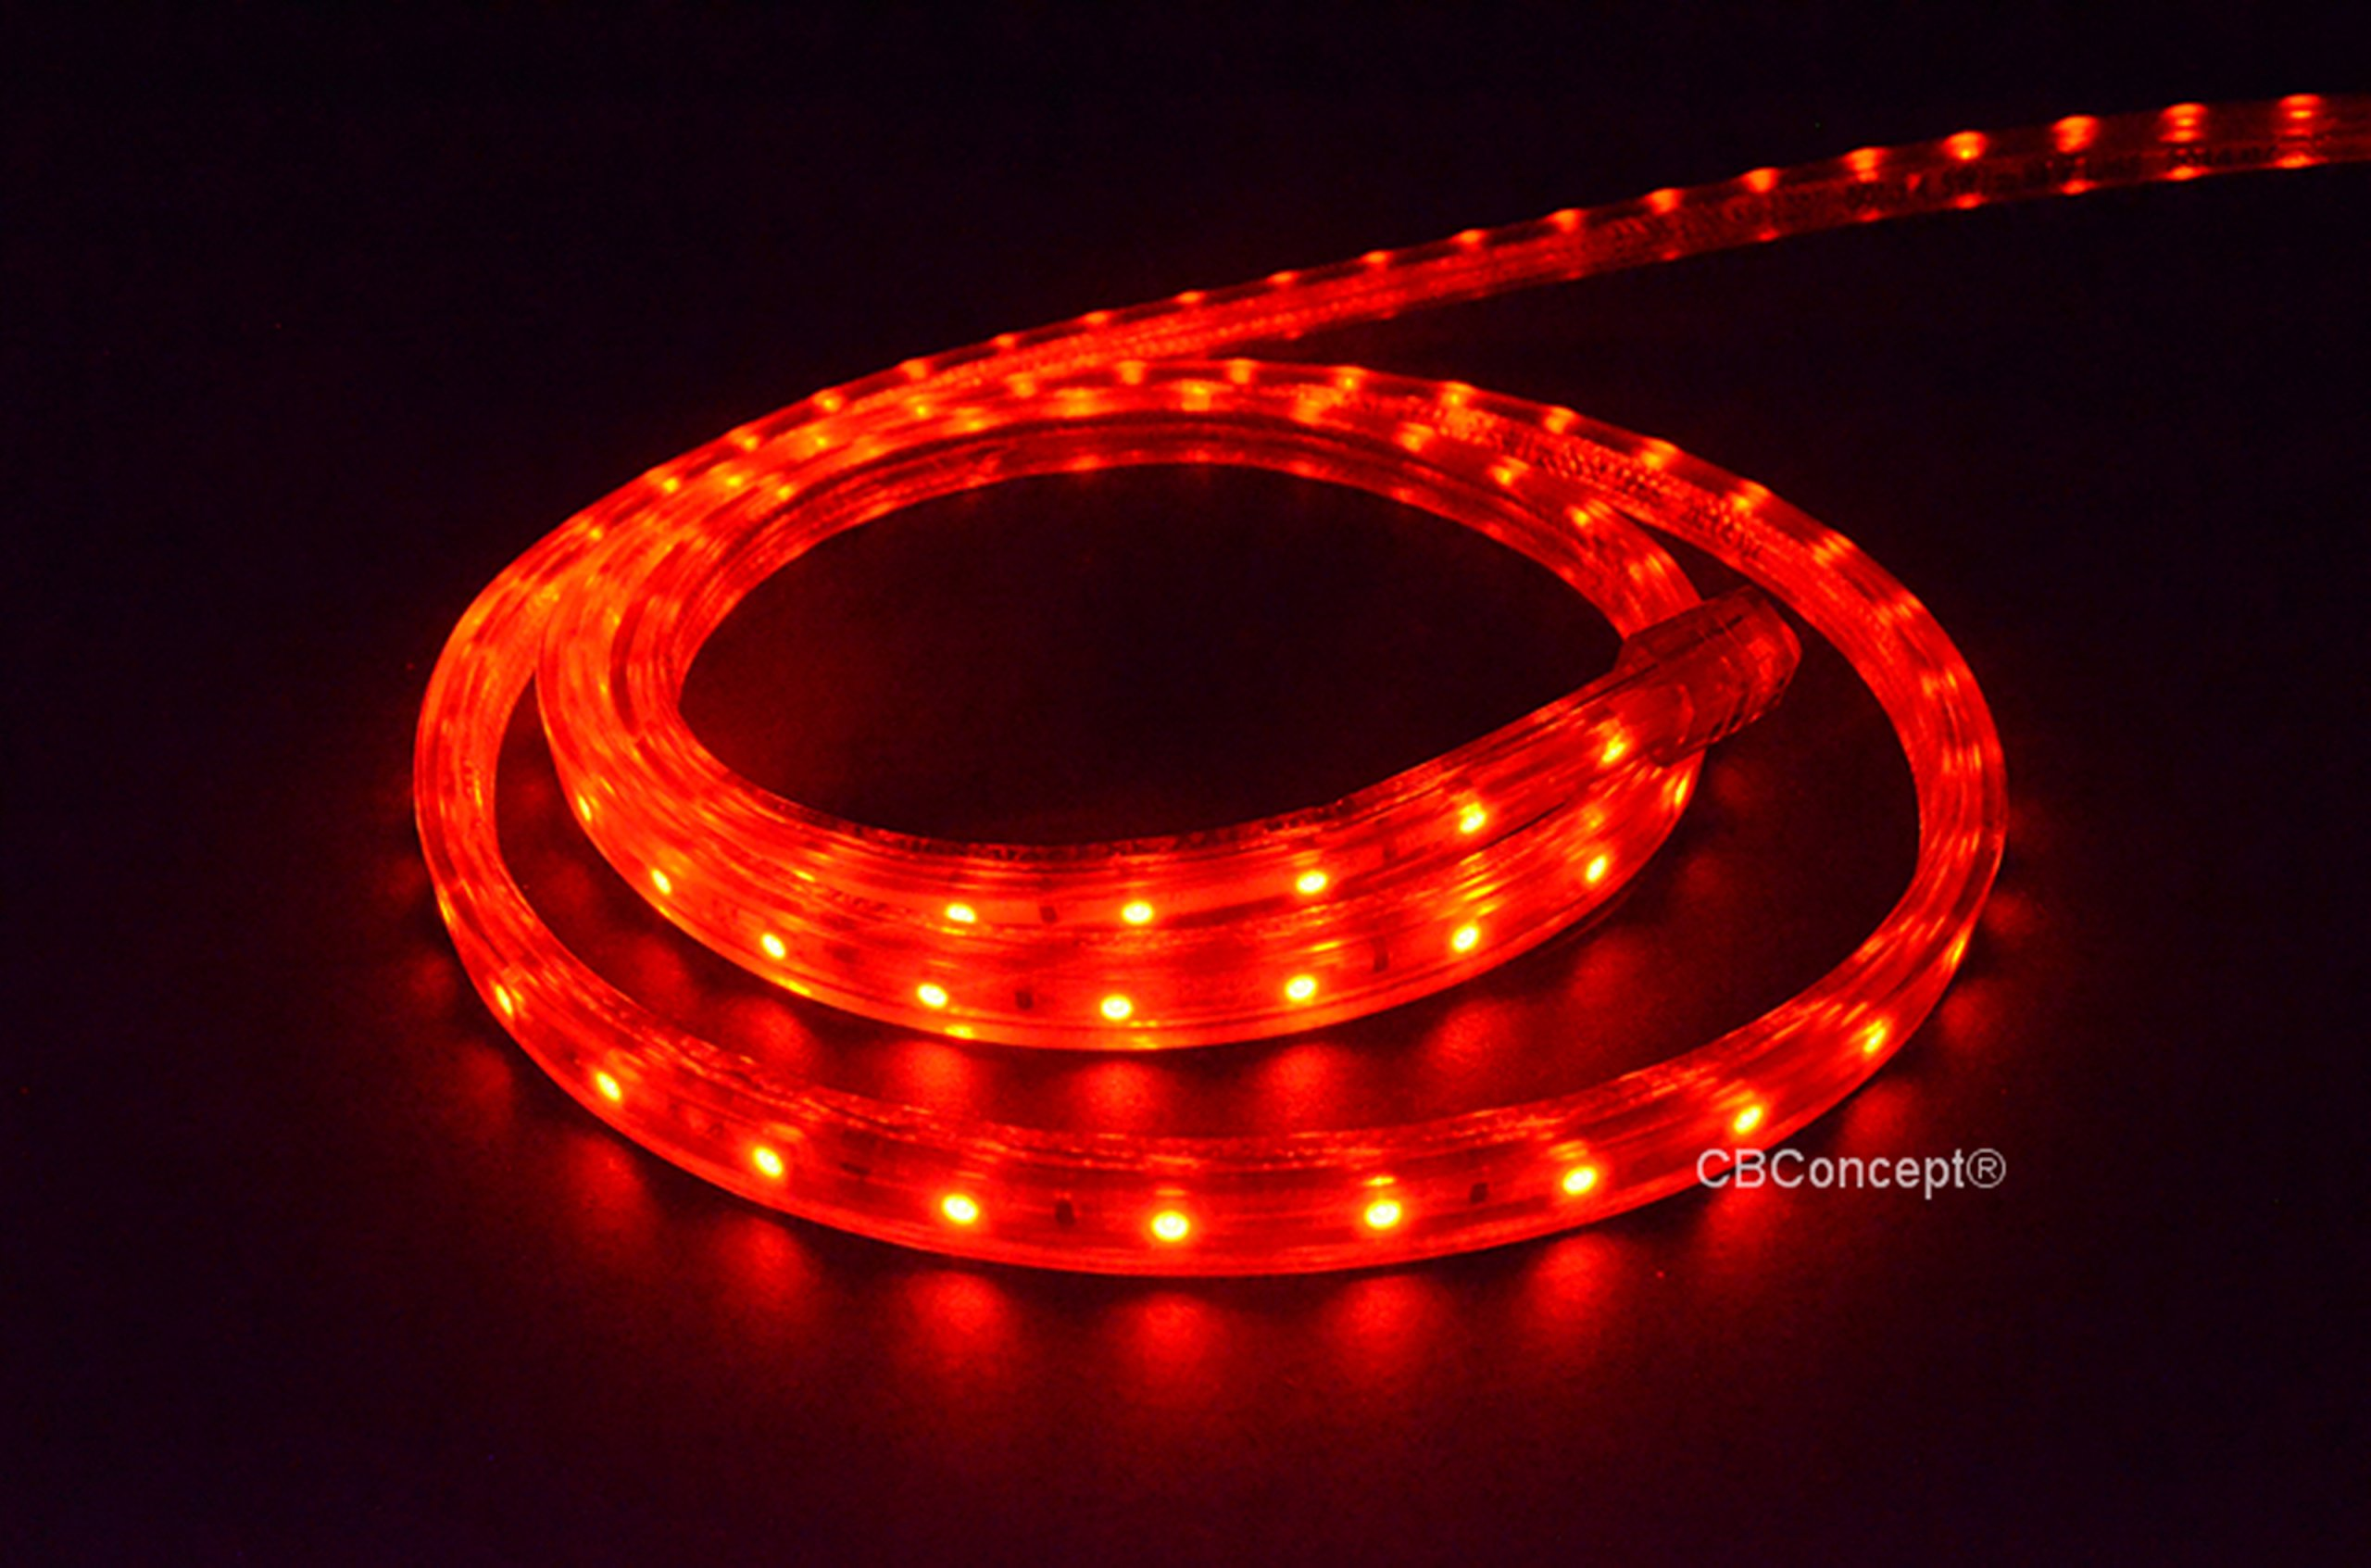 CBConcept UL Listed, 150 Feet, 16500 Lumen, RED, Dimmable, 110-120V AC Flexible Flat LED Strip Rope Light, 2760 Units 3528 SMD LEDs, Waterproof IP65, Accessories Included, Size: 0.45 Inch Width X 0.28 Inch Thickness- [Christmas Lighting, Indoor / Outdoor